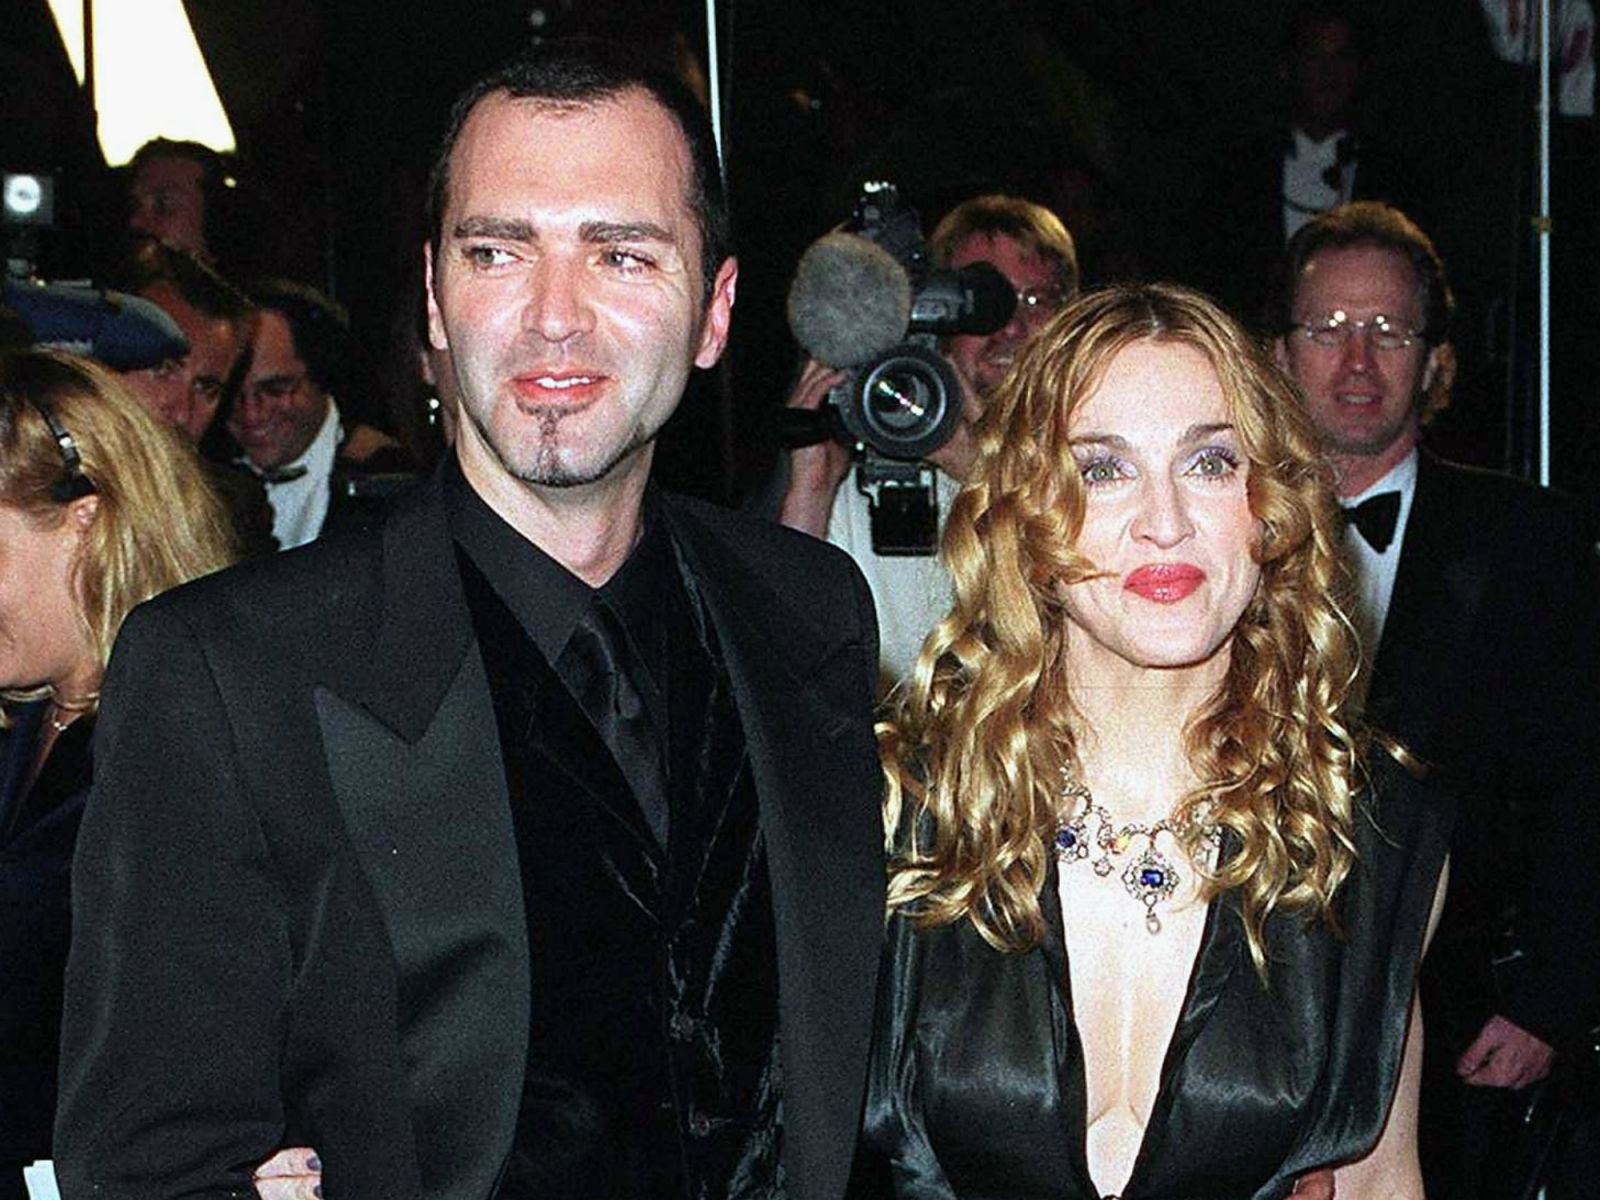 Madonna and Christopher Ciccone